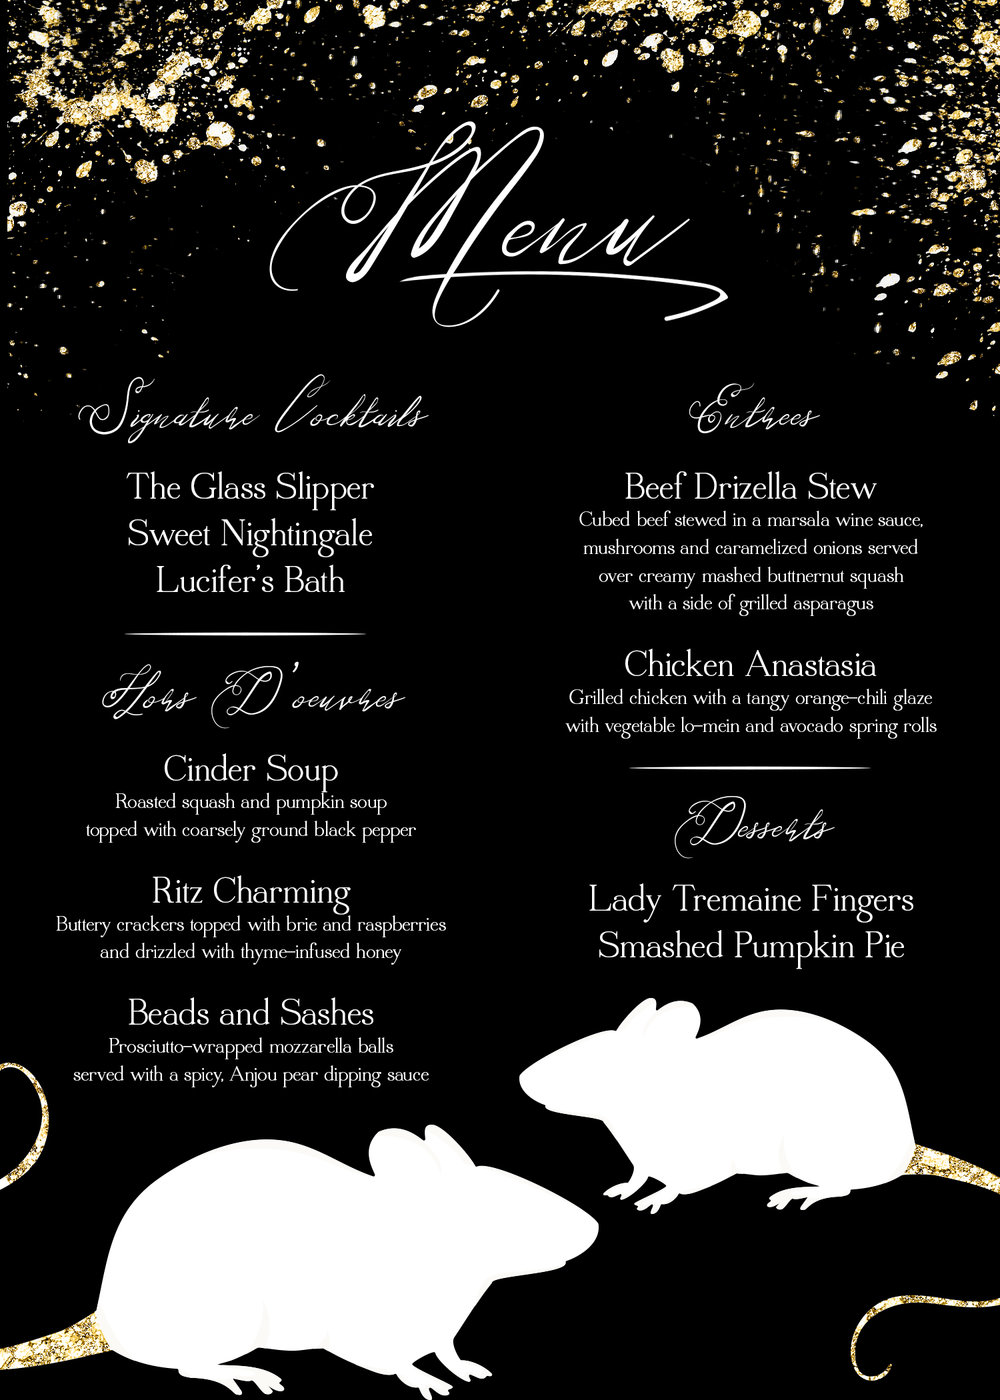 Halloween Ball Menu.jpg